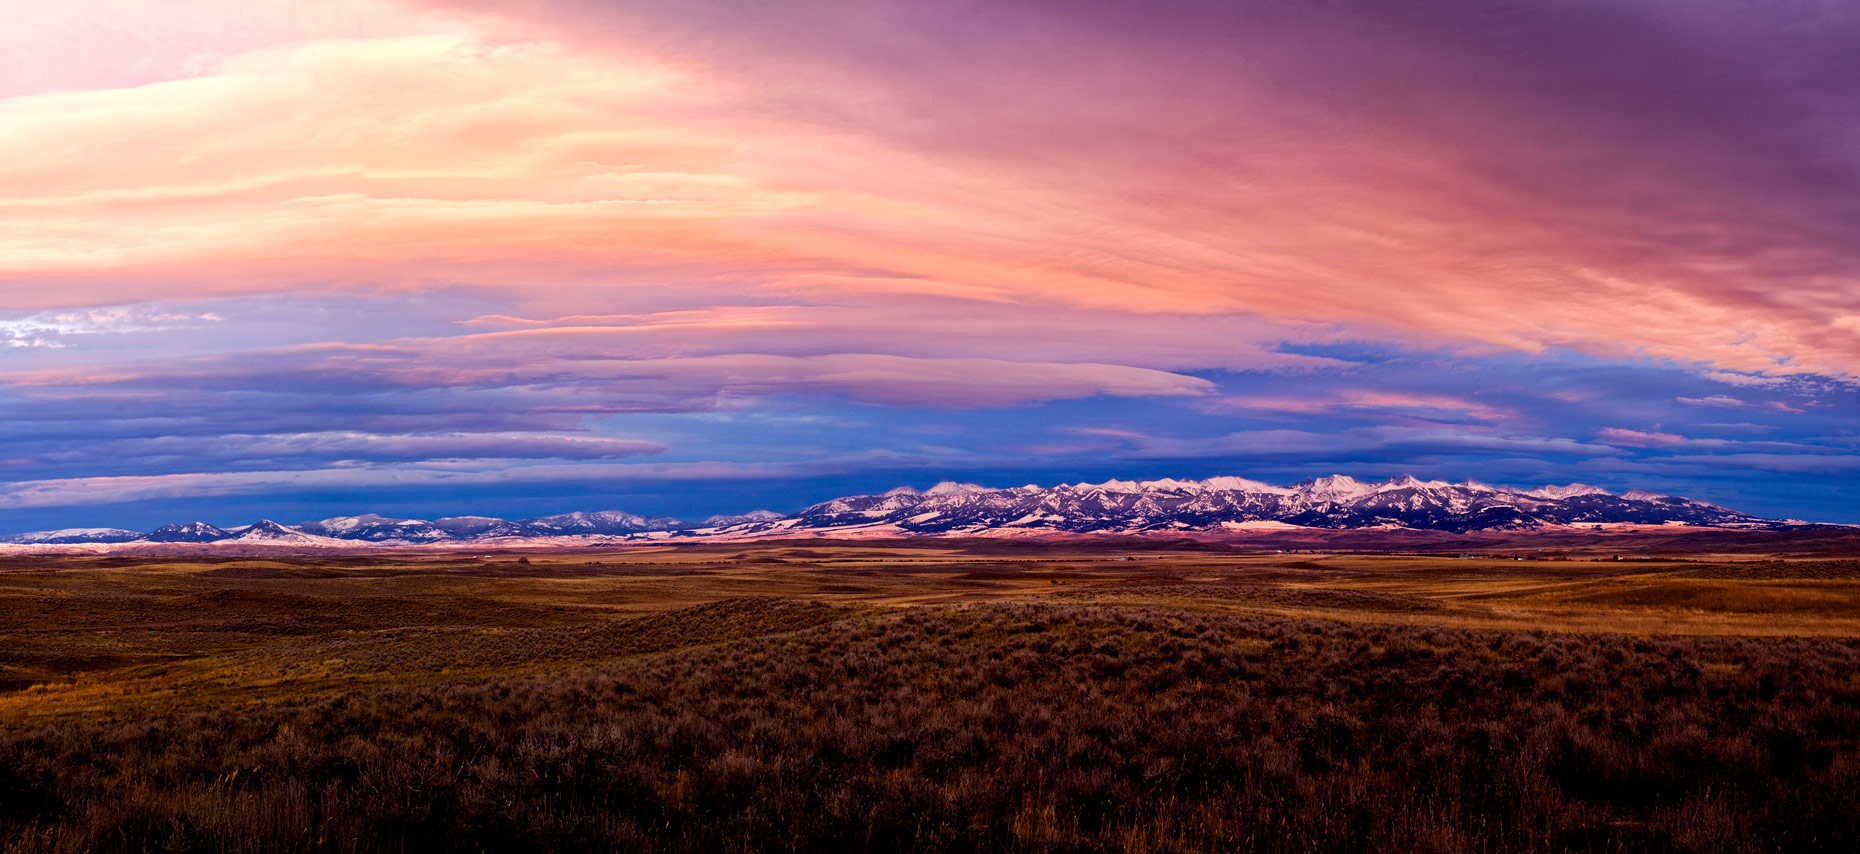 DAP landscape Crazy Mountains sunset